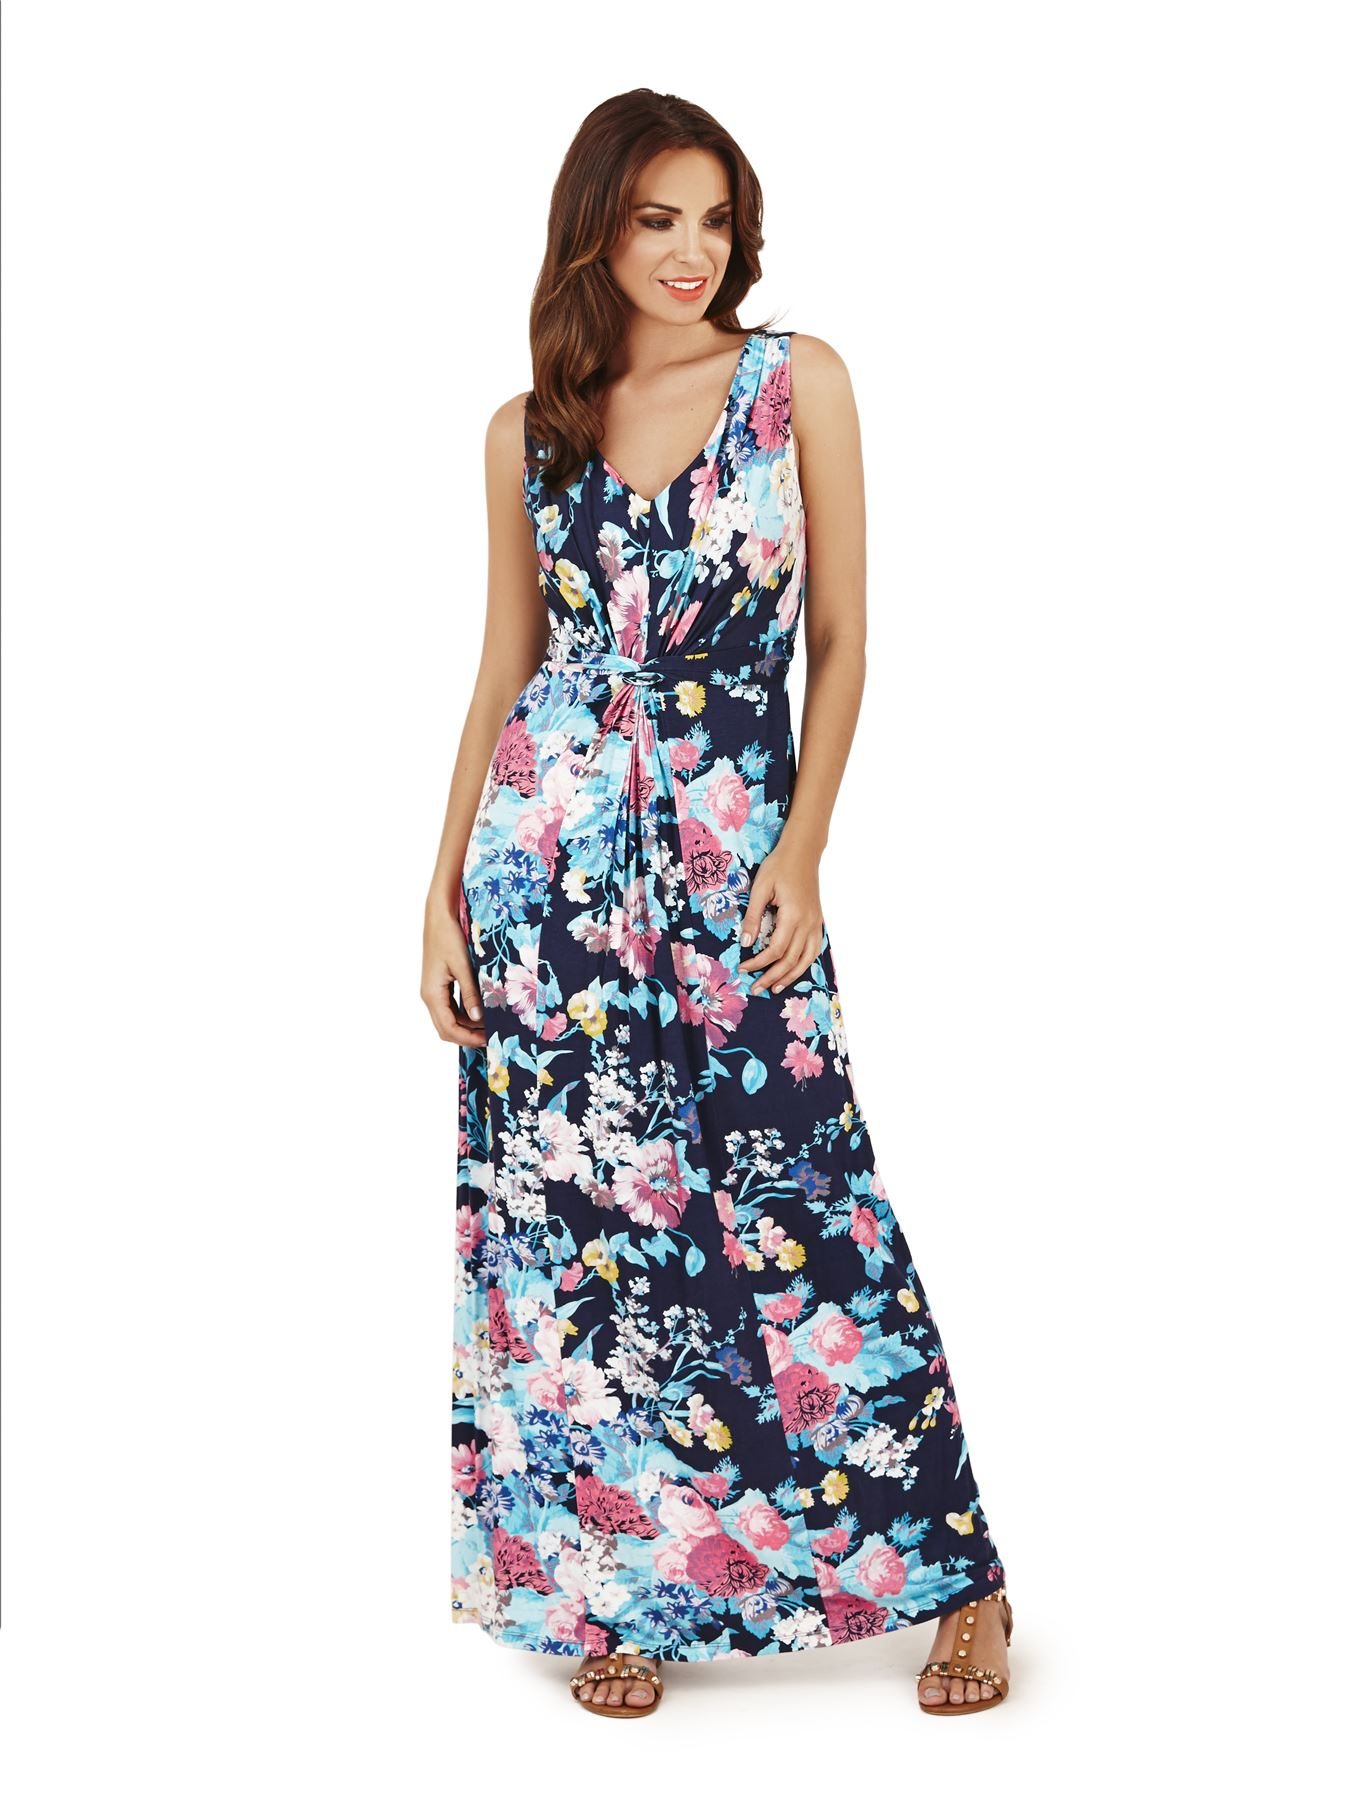 Maxi Dresses at Very Swish into the party with a maxi dress from our selection at Very. You'll love feeling fun and feminine in a design from a glam brand like Little Mistress.